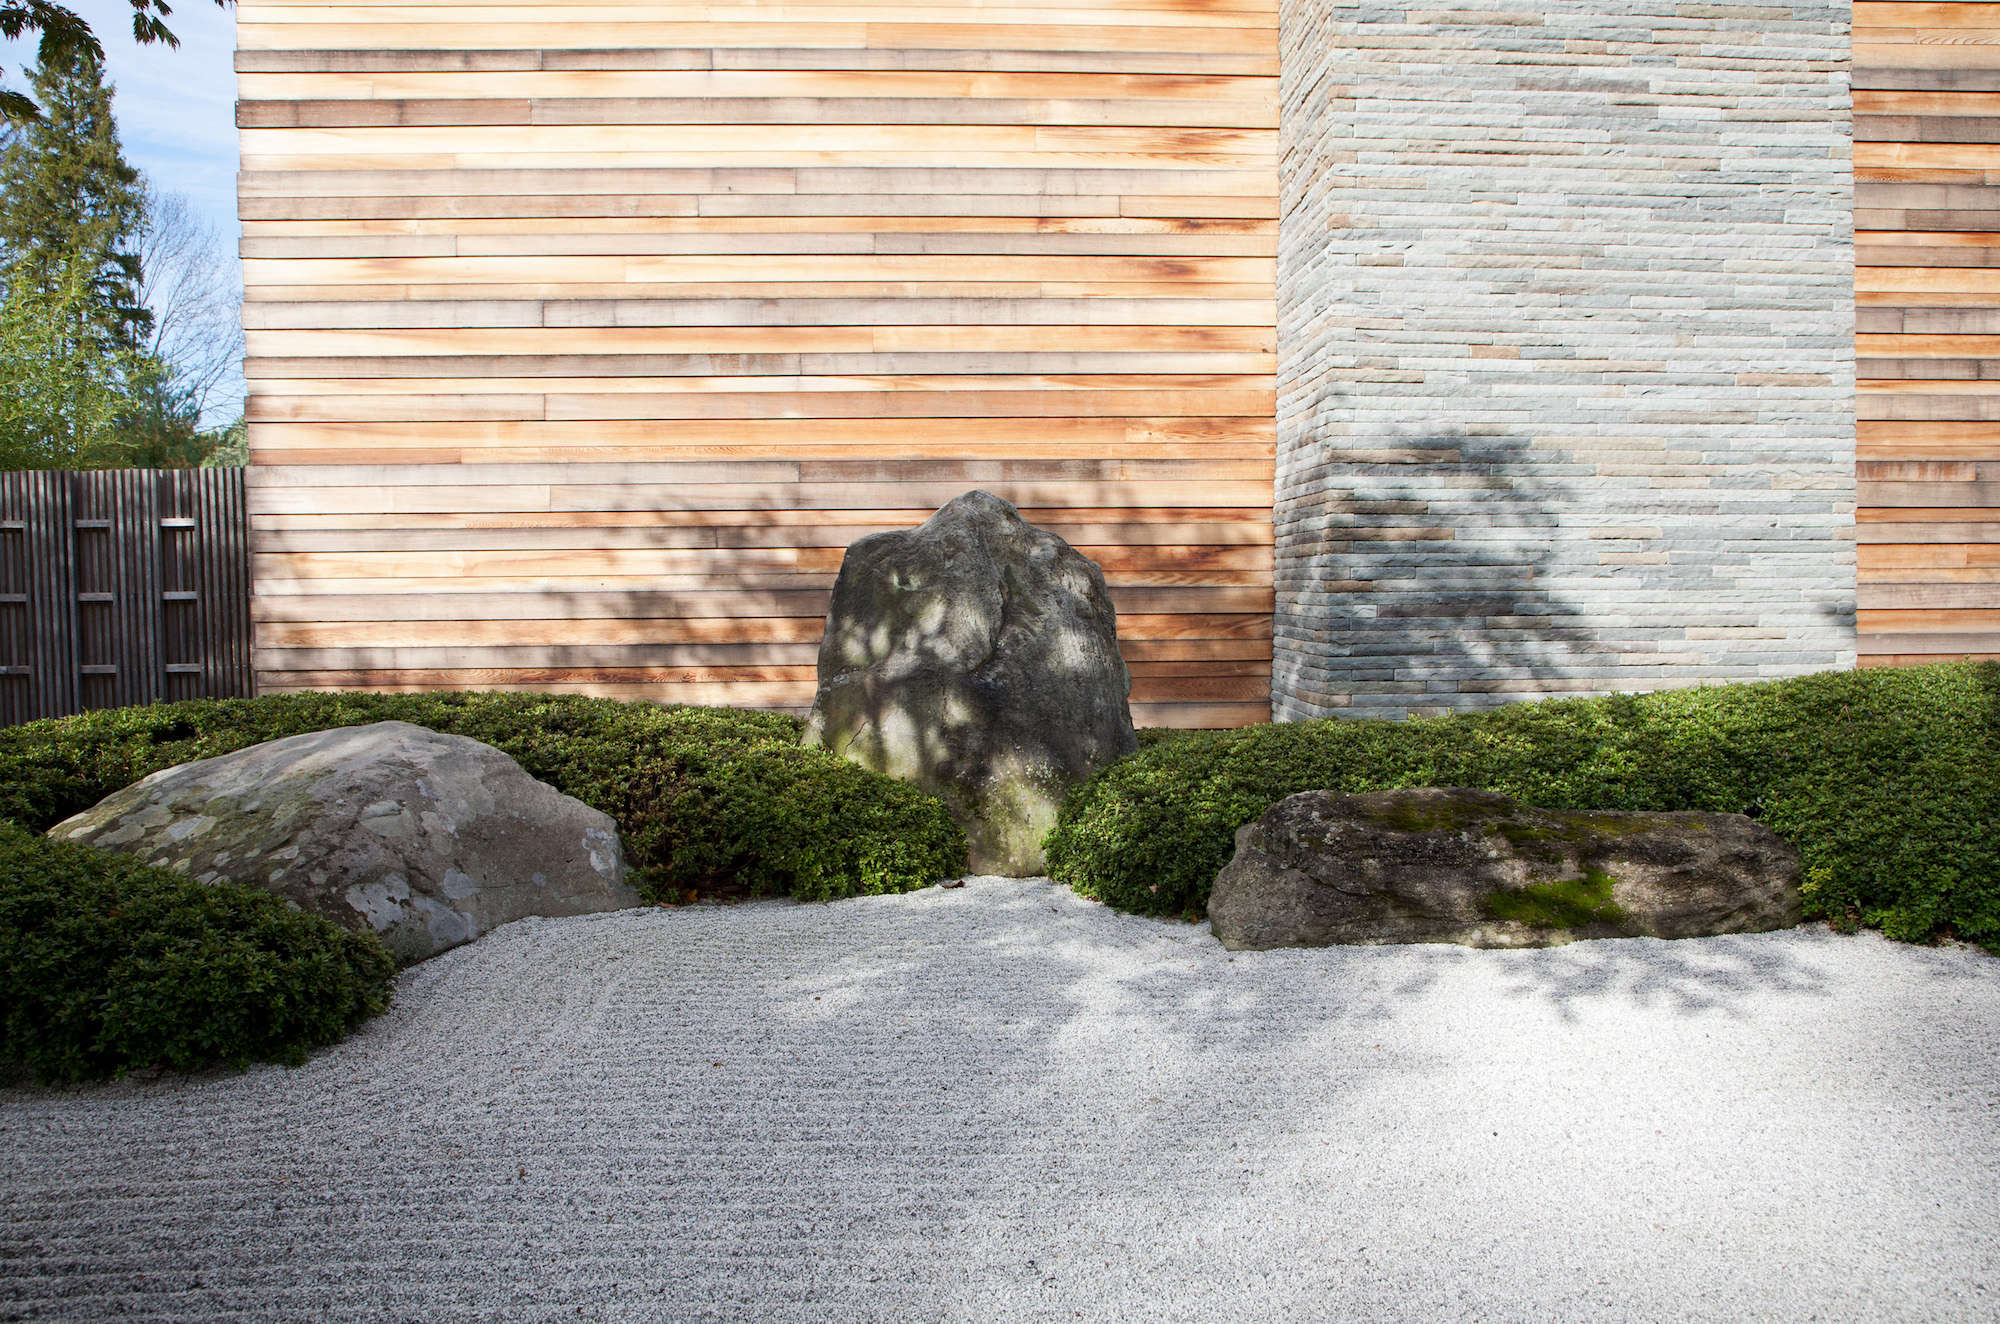 The sand that comprises the ocean garden is finely crushed white granite.